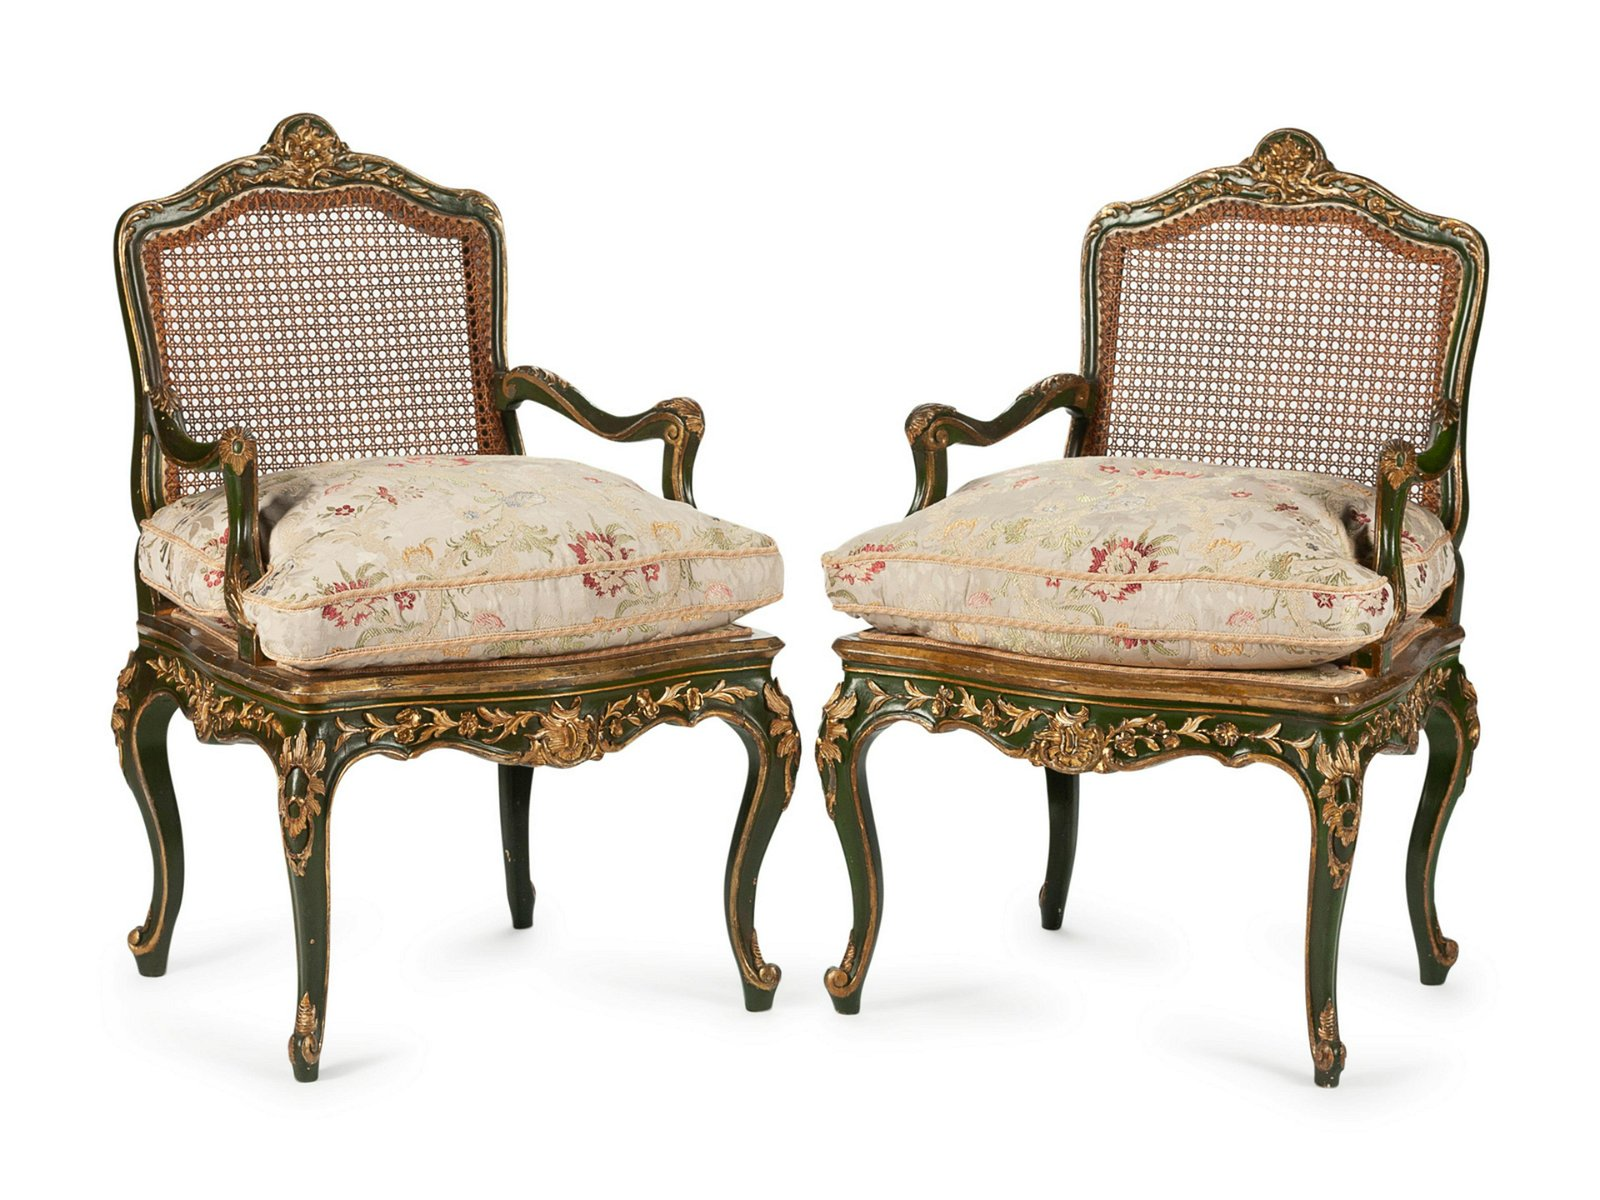 A Pair of Louis XV Style Painted and Parcel Gilt